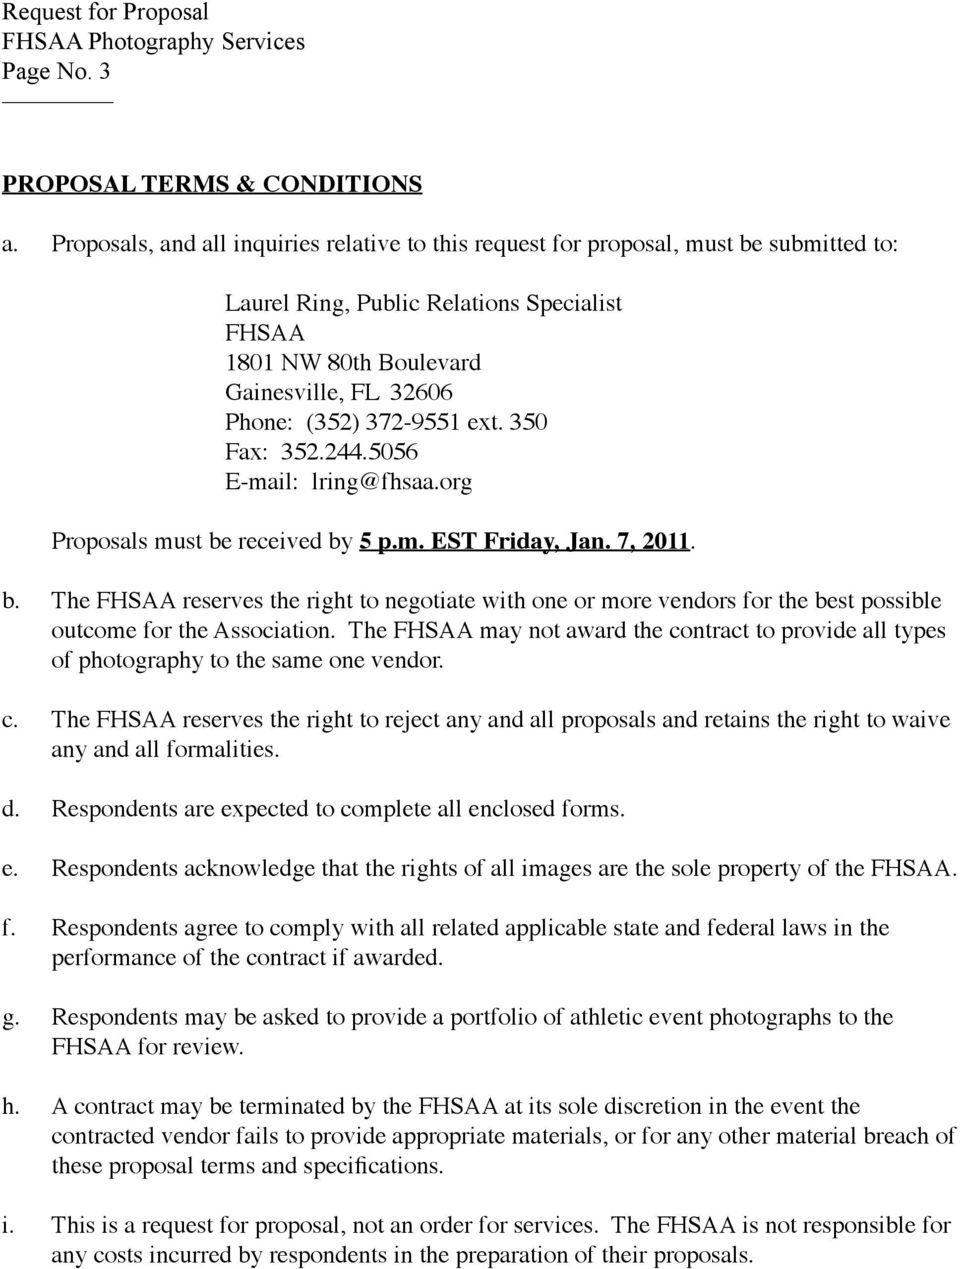 372-9551 ext. 350 Fax: 352.244.5056 E-mail: lring@fhsaa.org Proposals must be received by 5 p.m. EST Friday, Jan. 7, 2011. b. The FHSAA reserves the right to negotiate with one or more vendors for the best possible outcome for the Association.